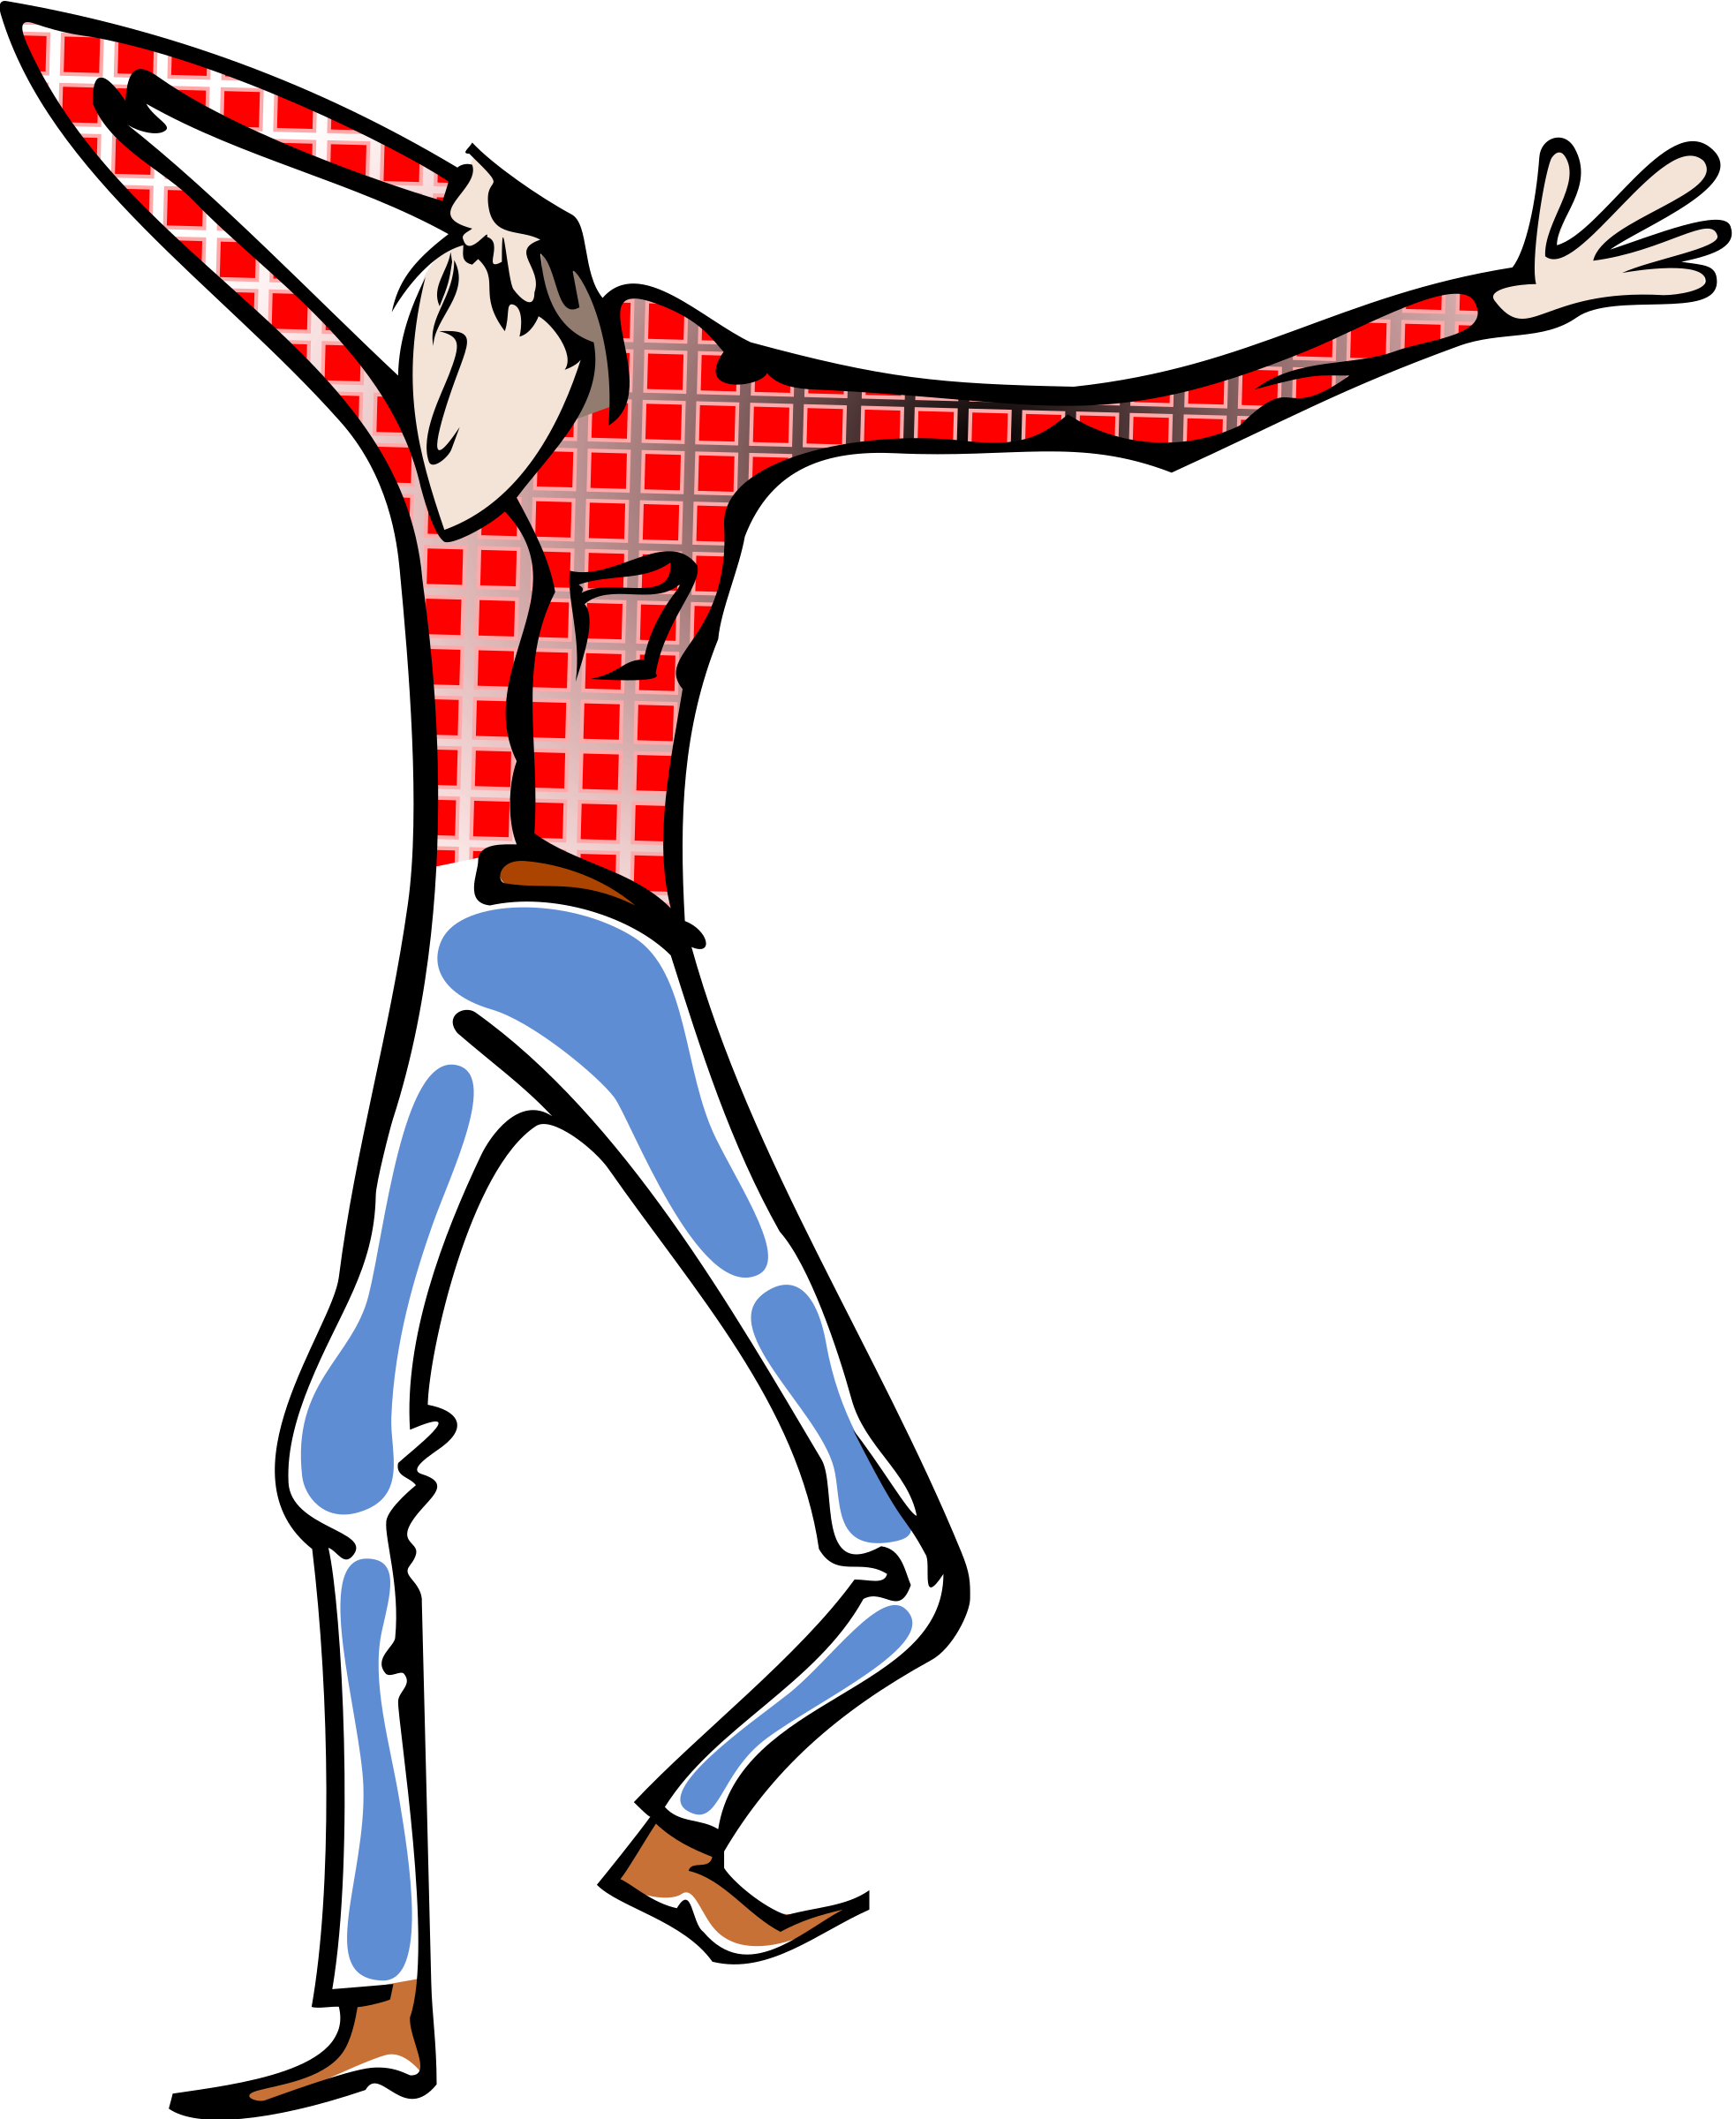 Clipart shirt jeans. Man with red and